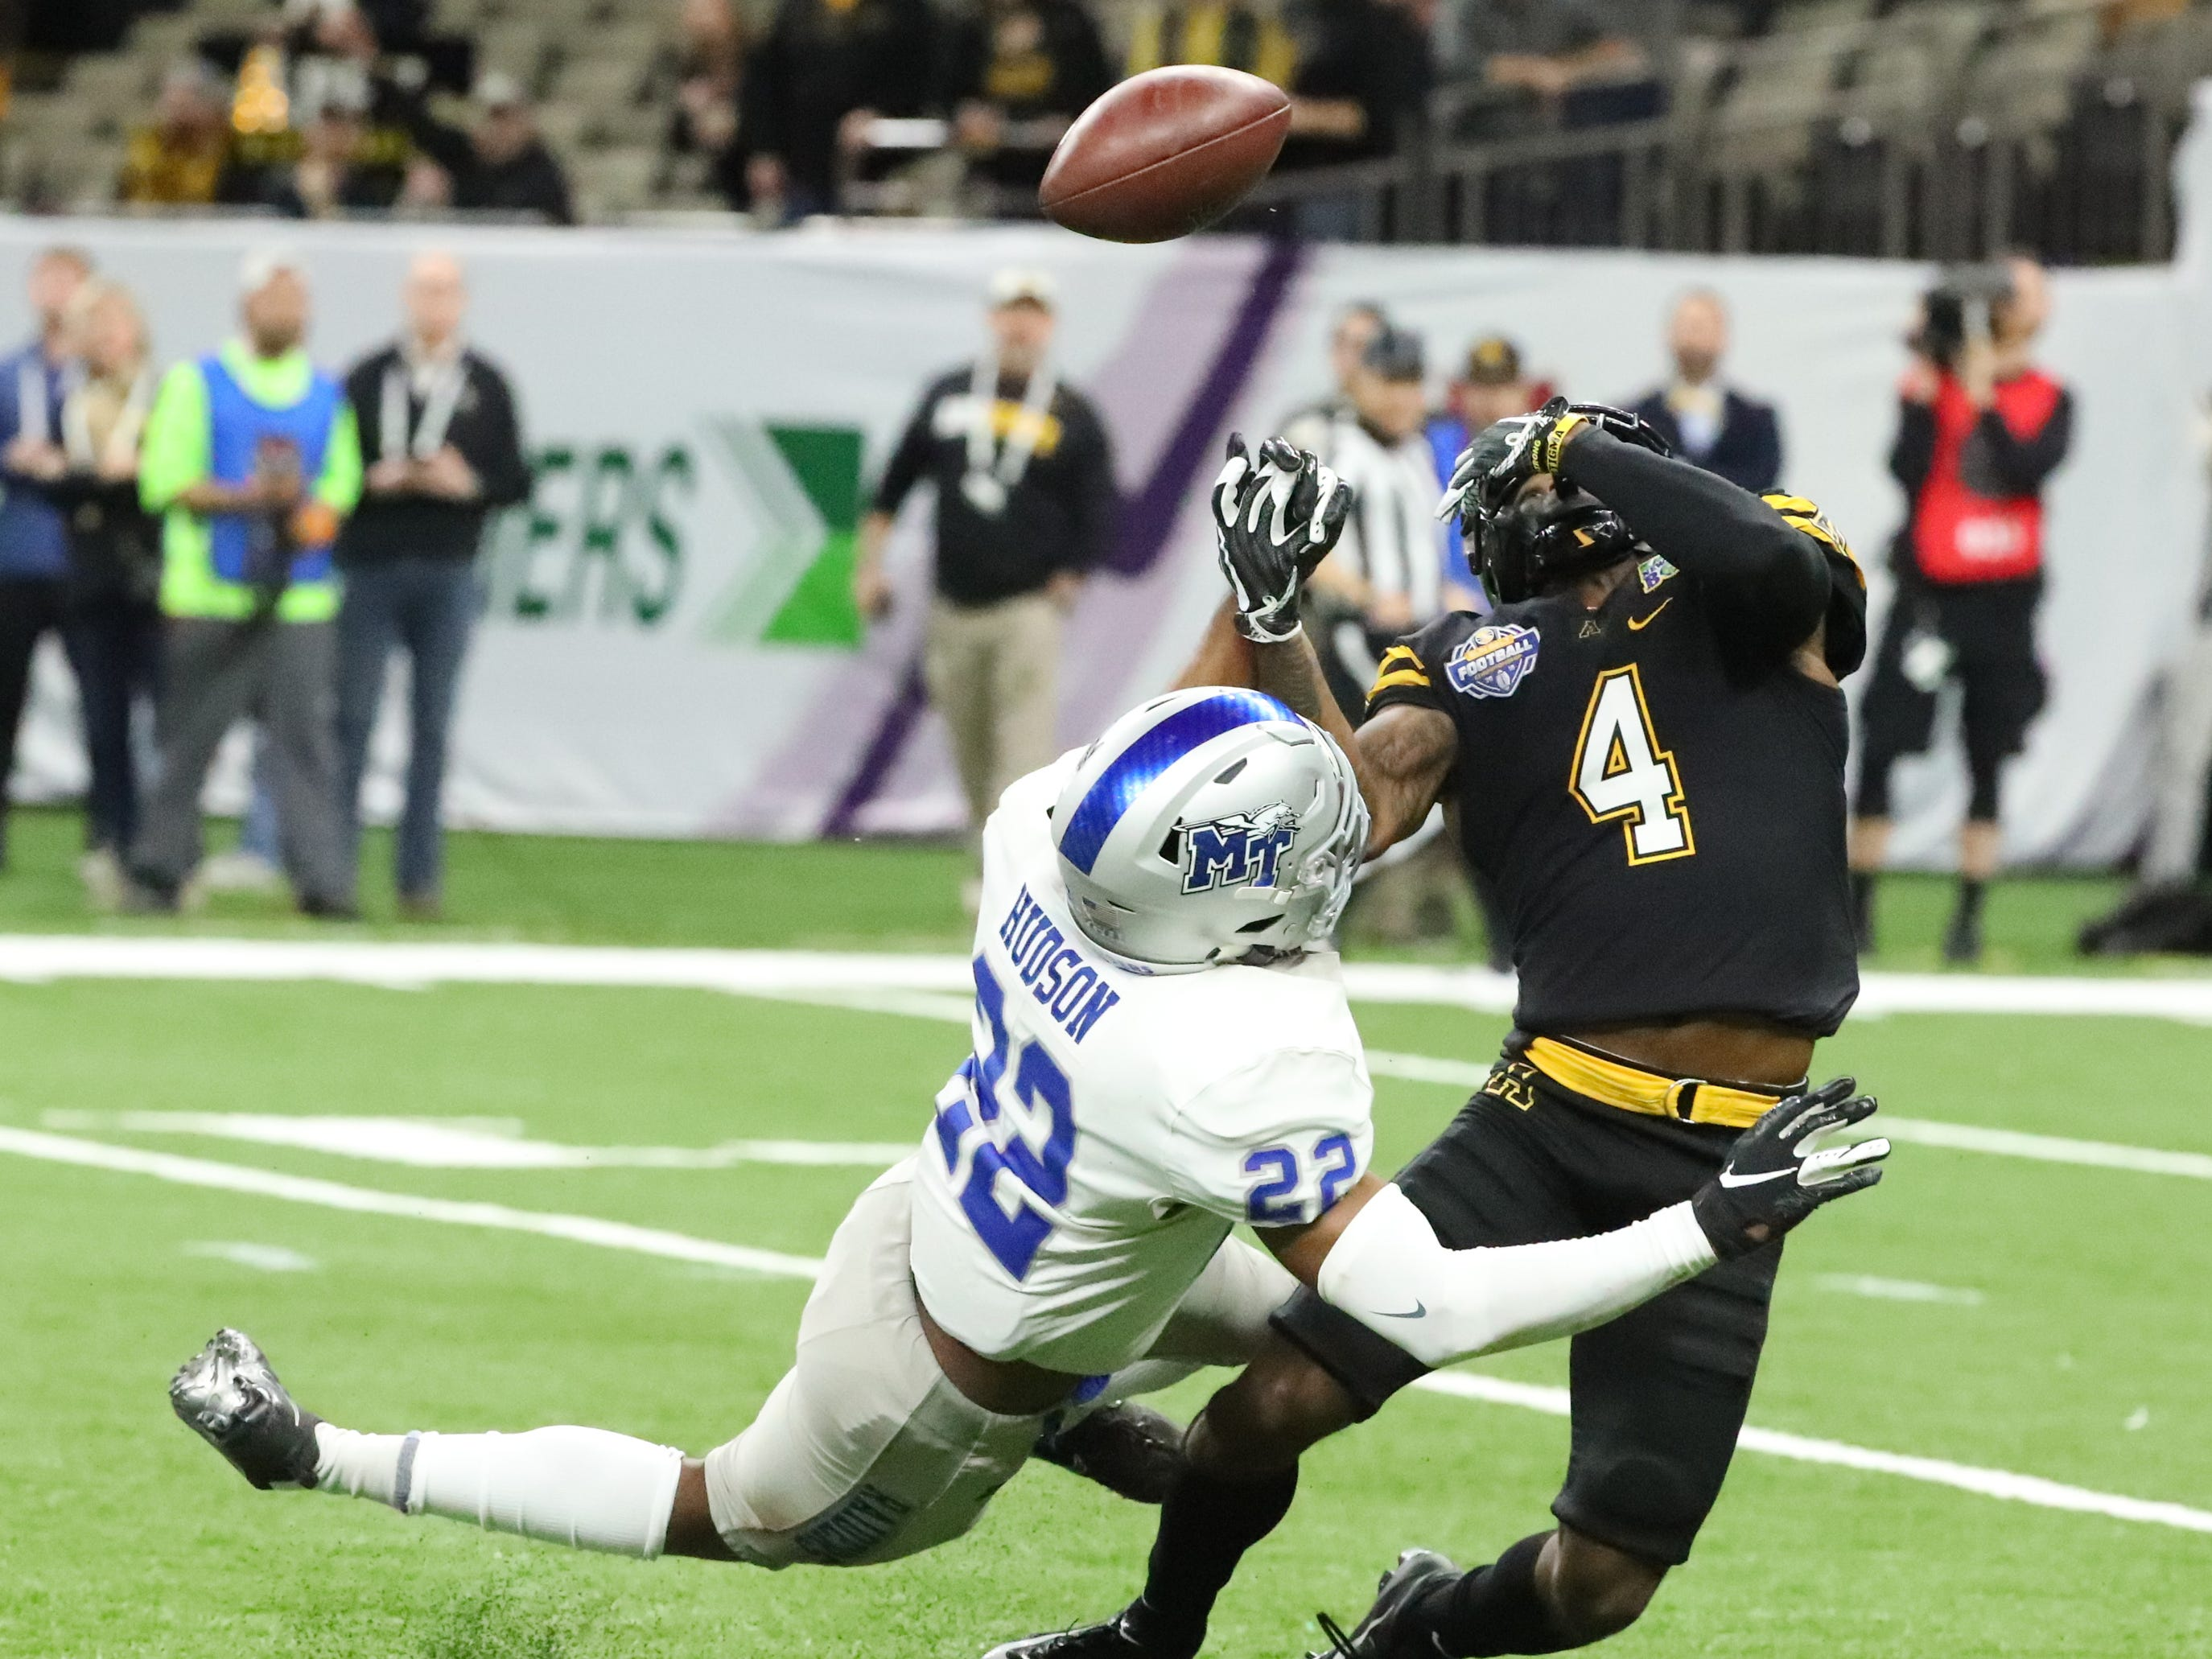 Appalachian State Mountaineers wide receiver Dominique Heath (4) attempts to catch a pass as Middle Tennessee Blue Raiders defensive back Cordell Hudson (22) covers him and Middle Tennessee Blue Raiders safety Reed Blankenship (12) moves in later to intercept the catch on Saturday, Dec. 15, 2018, during the New Orleans Bowl.